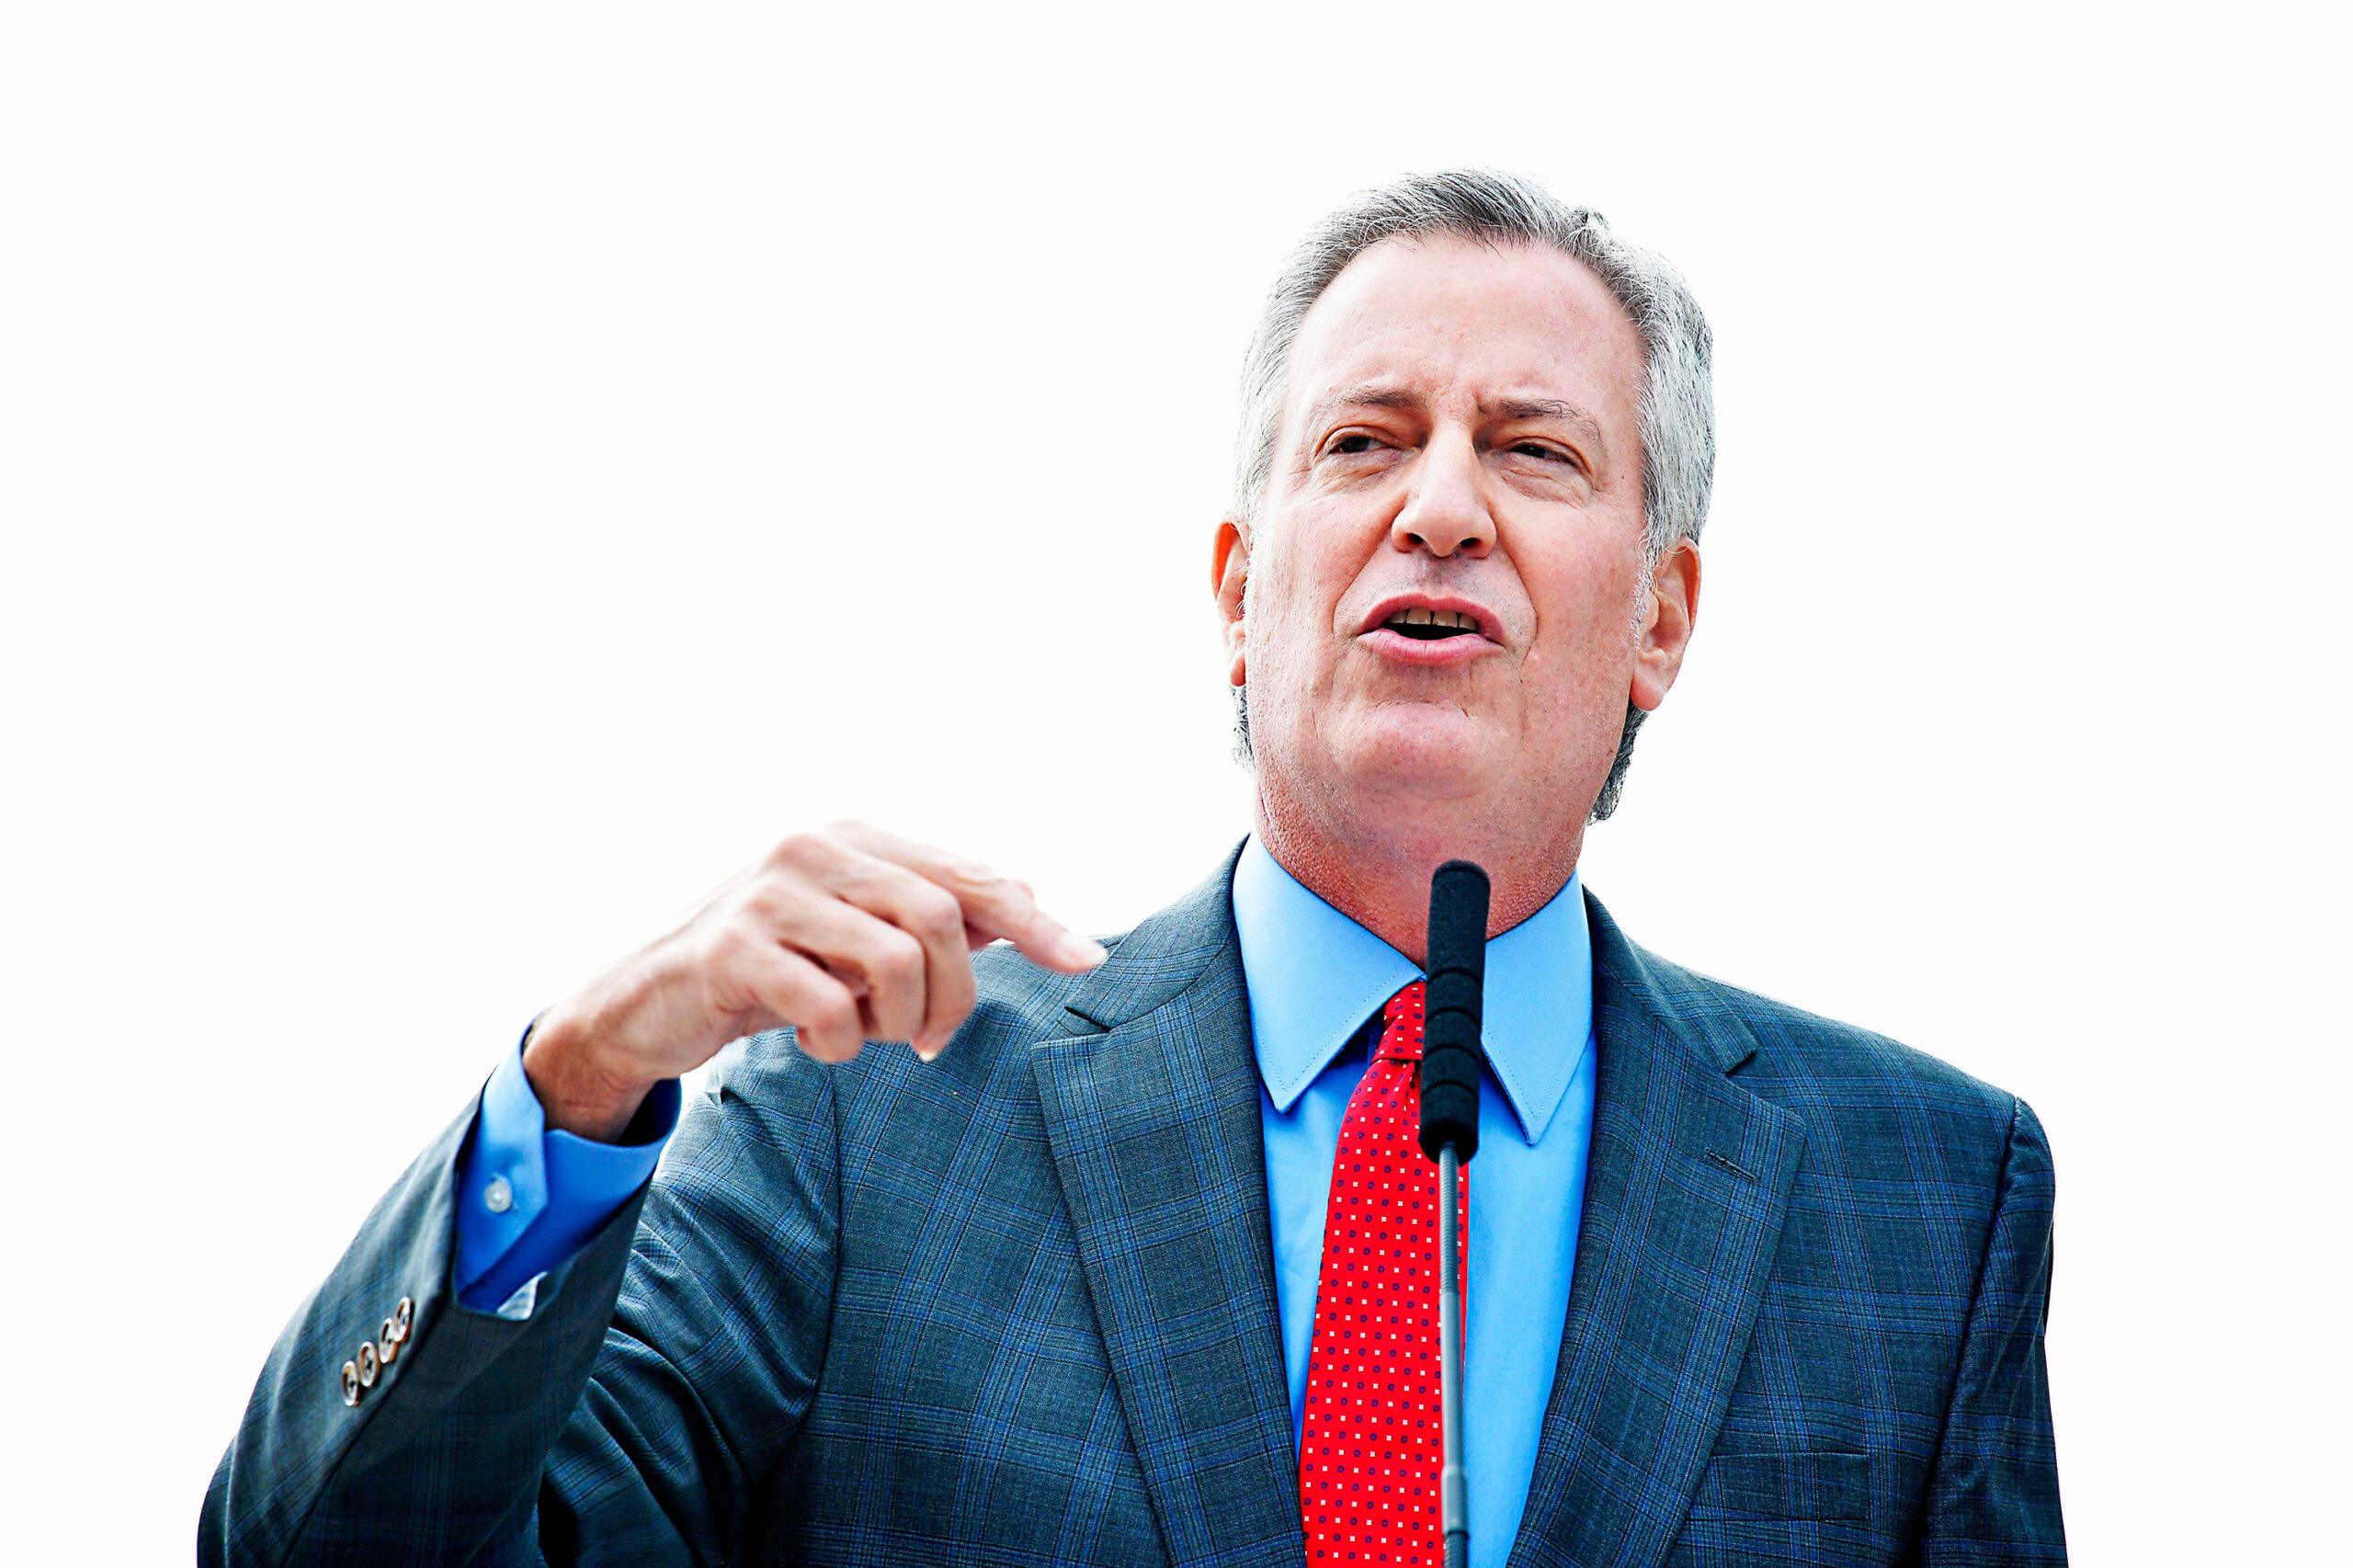 De Blasio wants NYC to shut down COVID-19 hot spots starting Wednesday